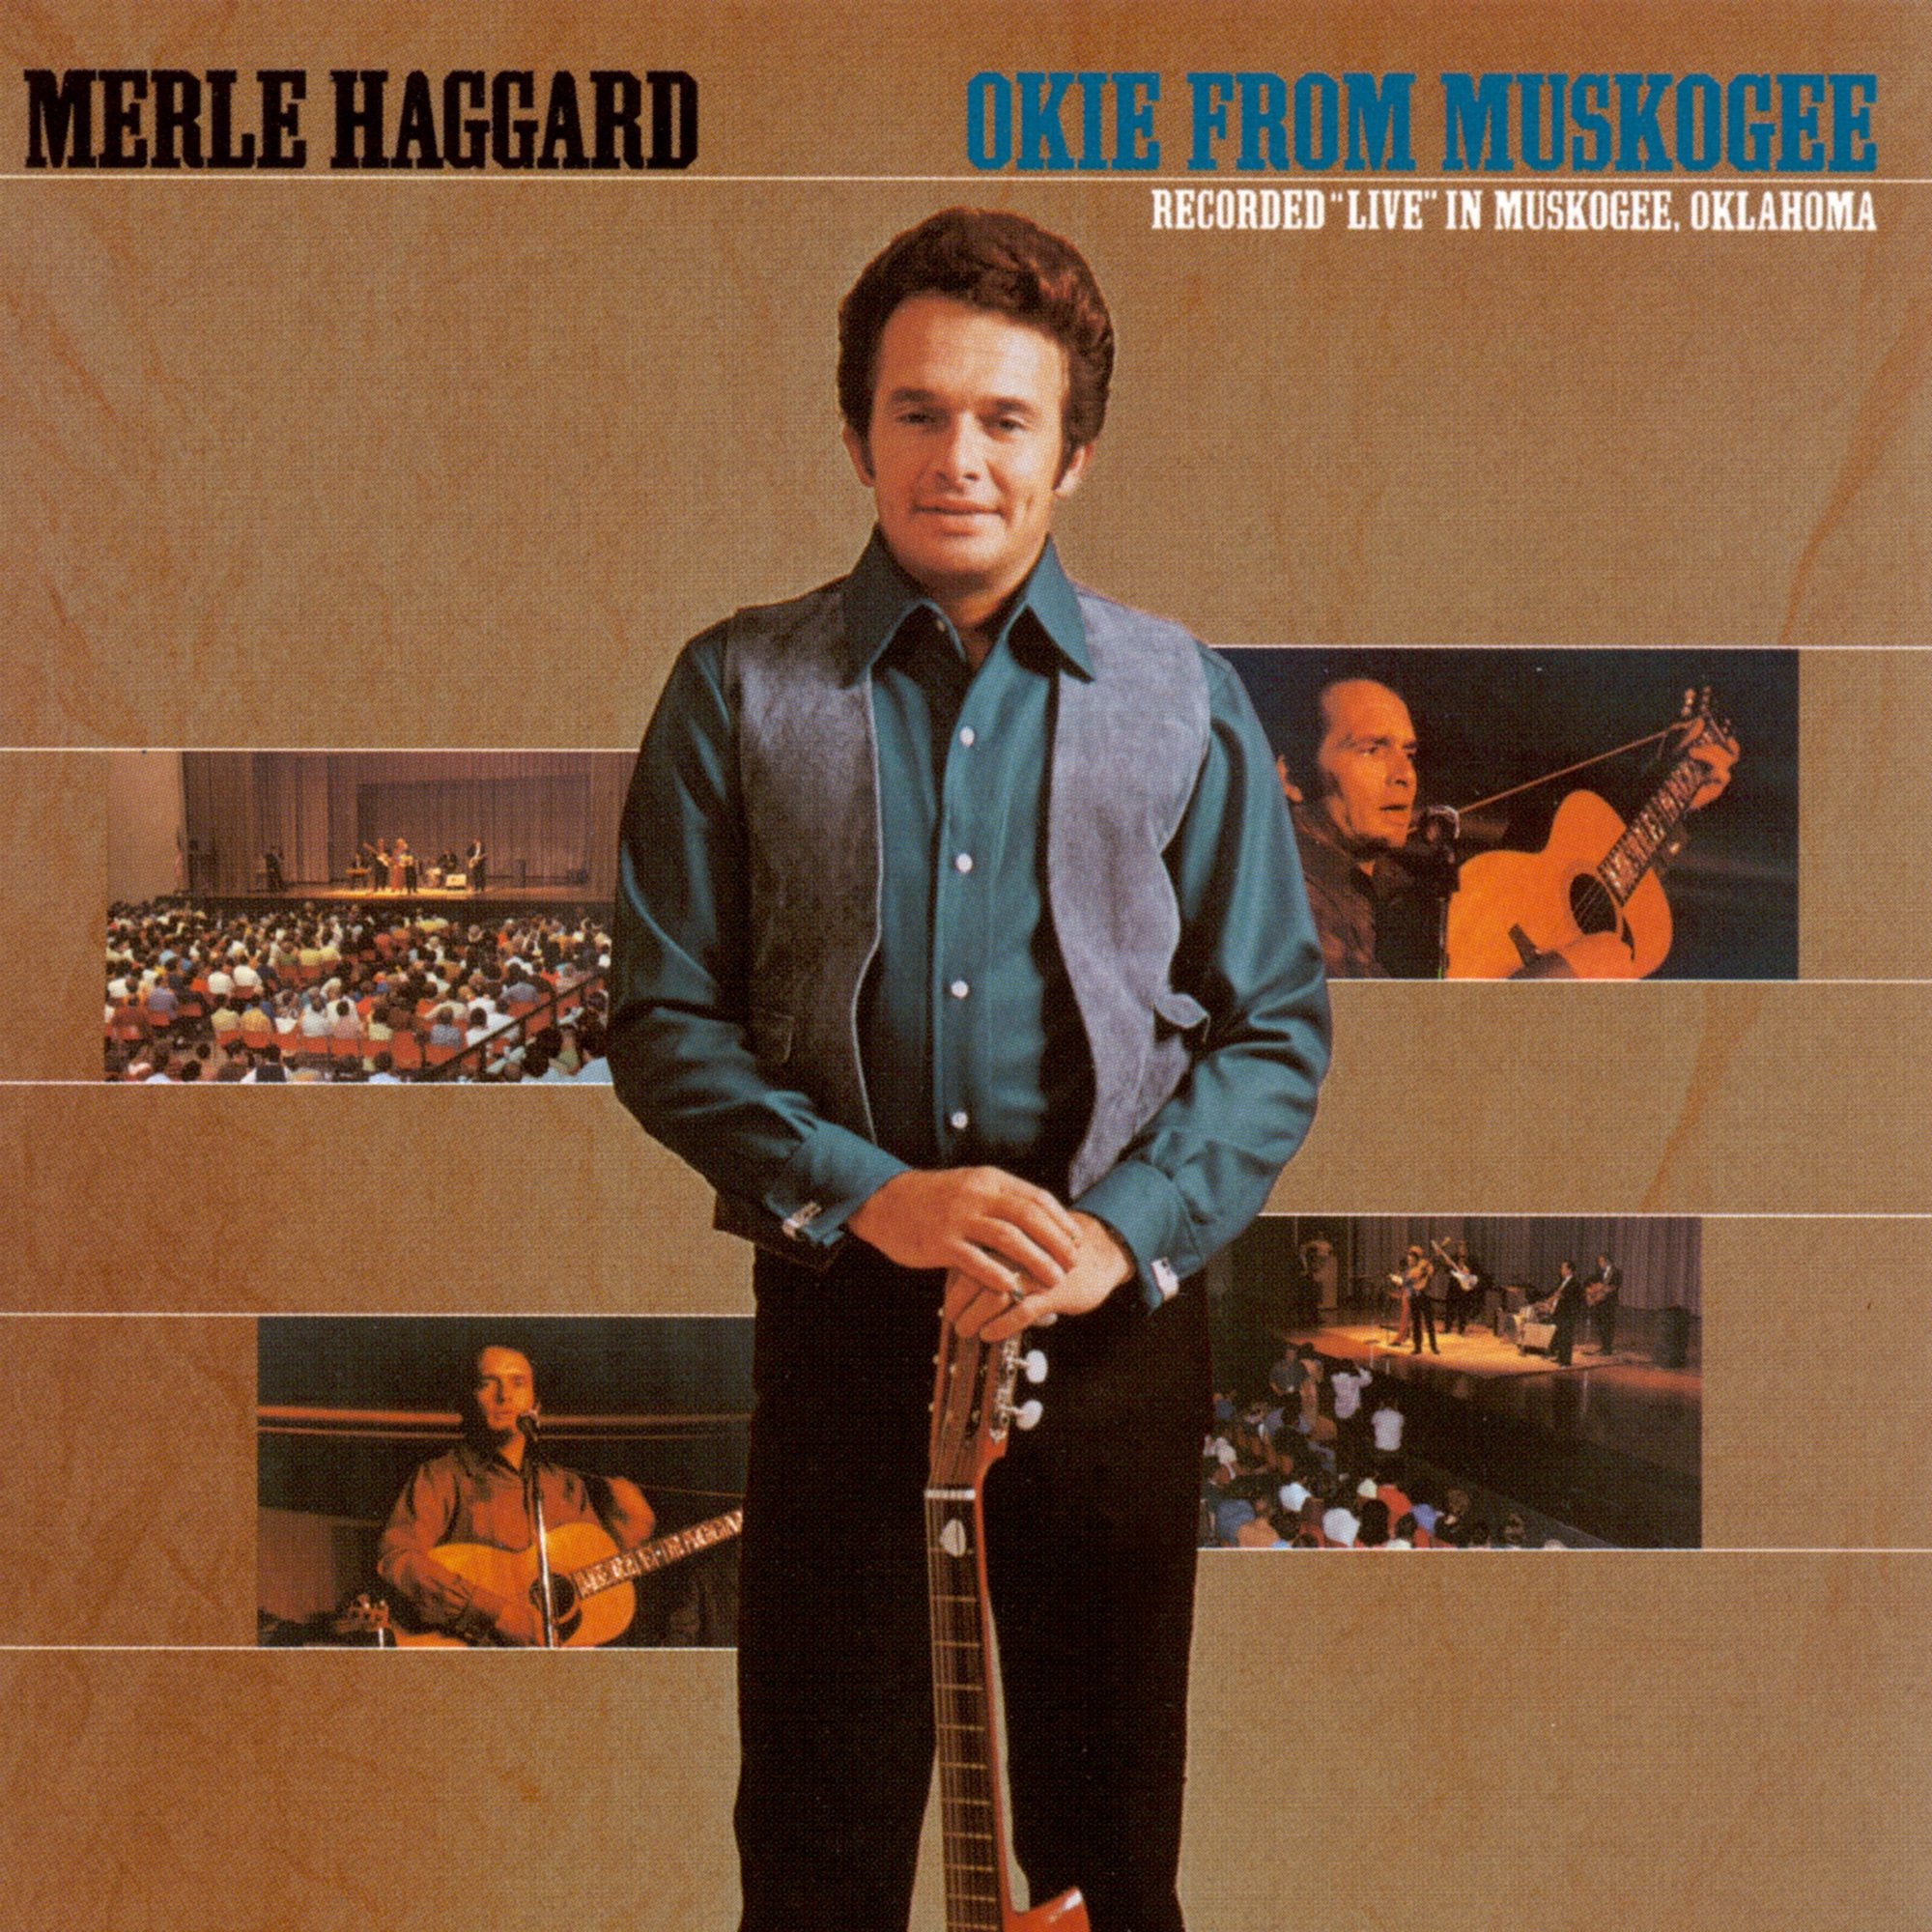 Merle Haggard 'Okie from Muskogee' Cover